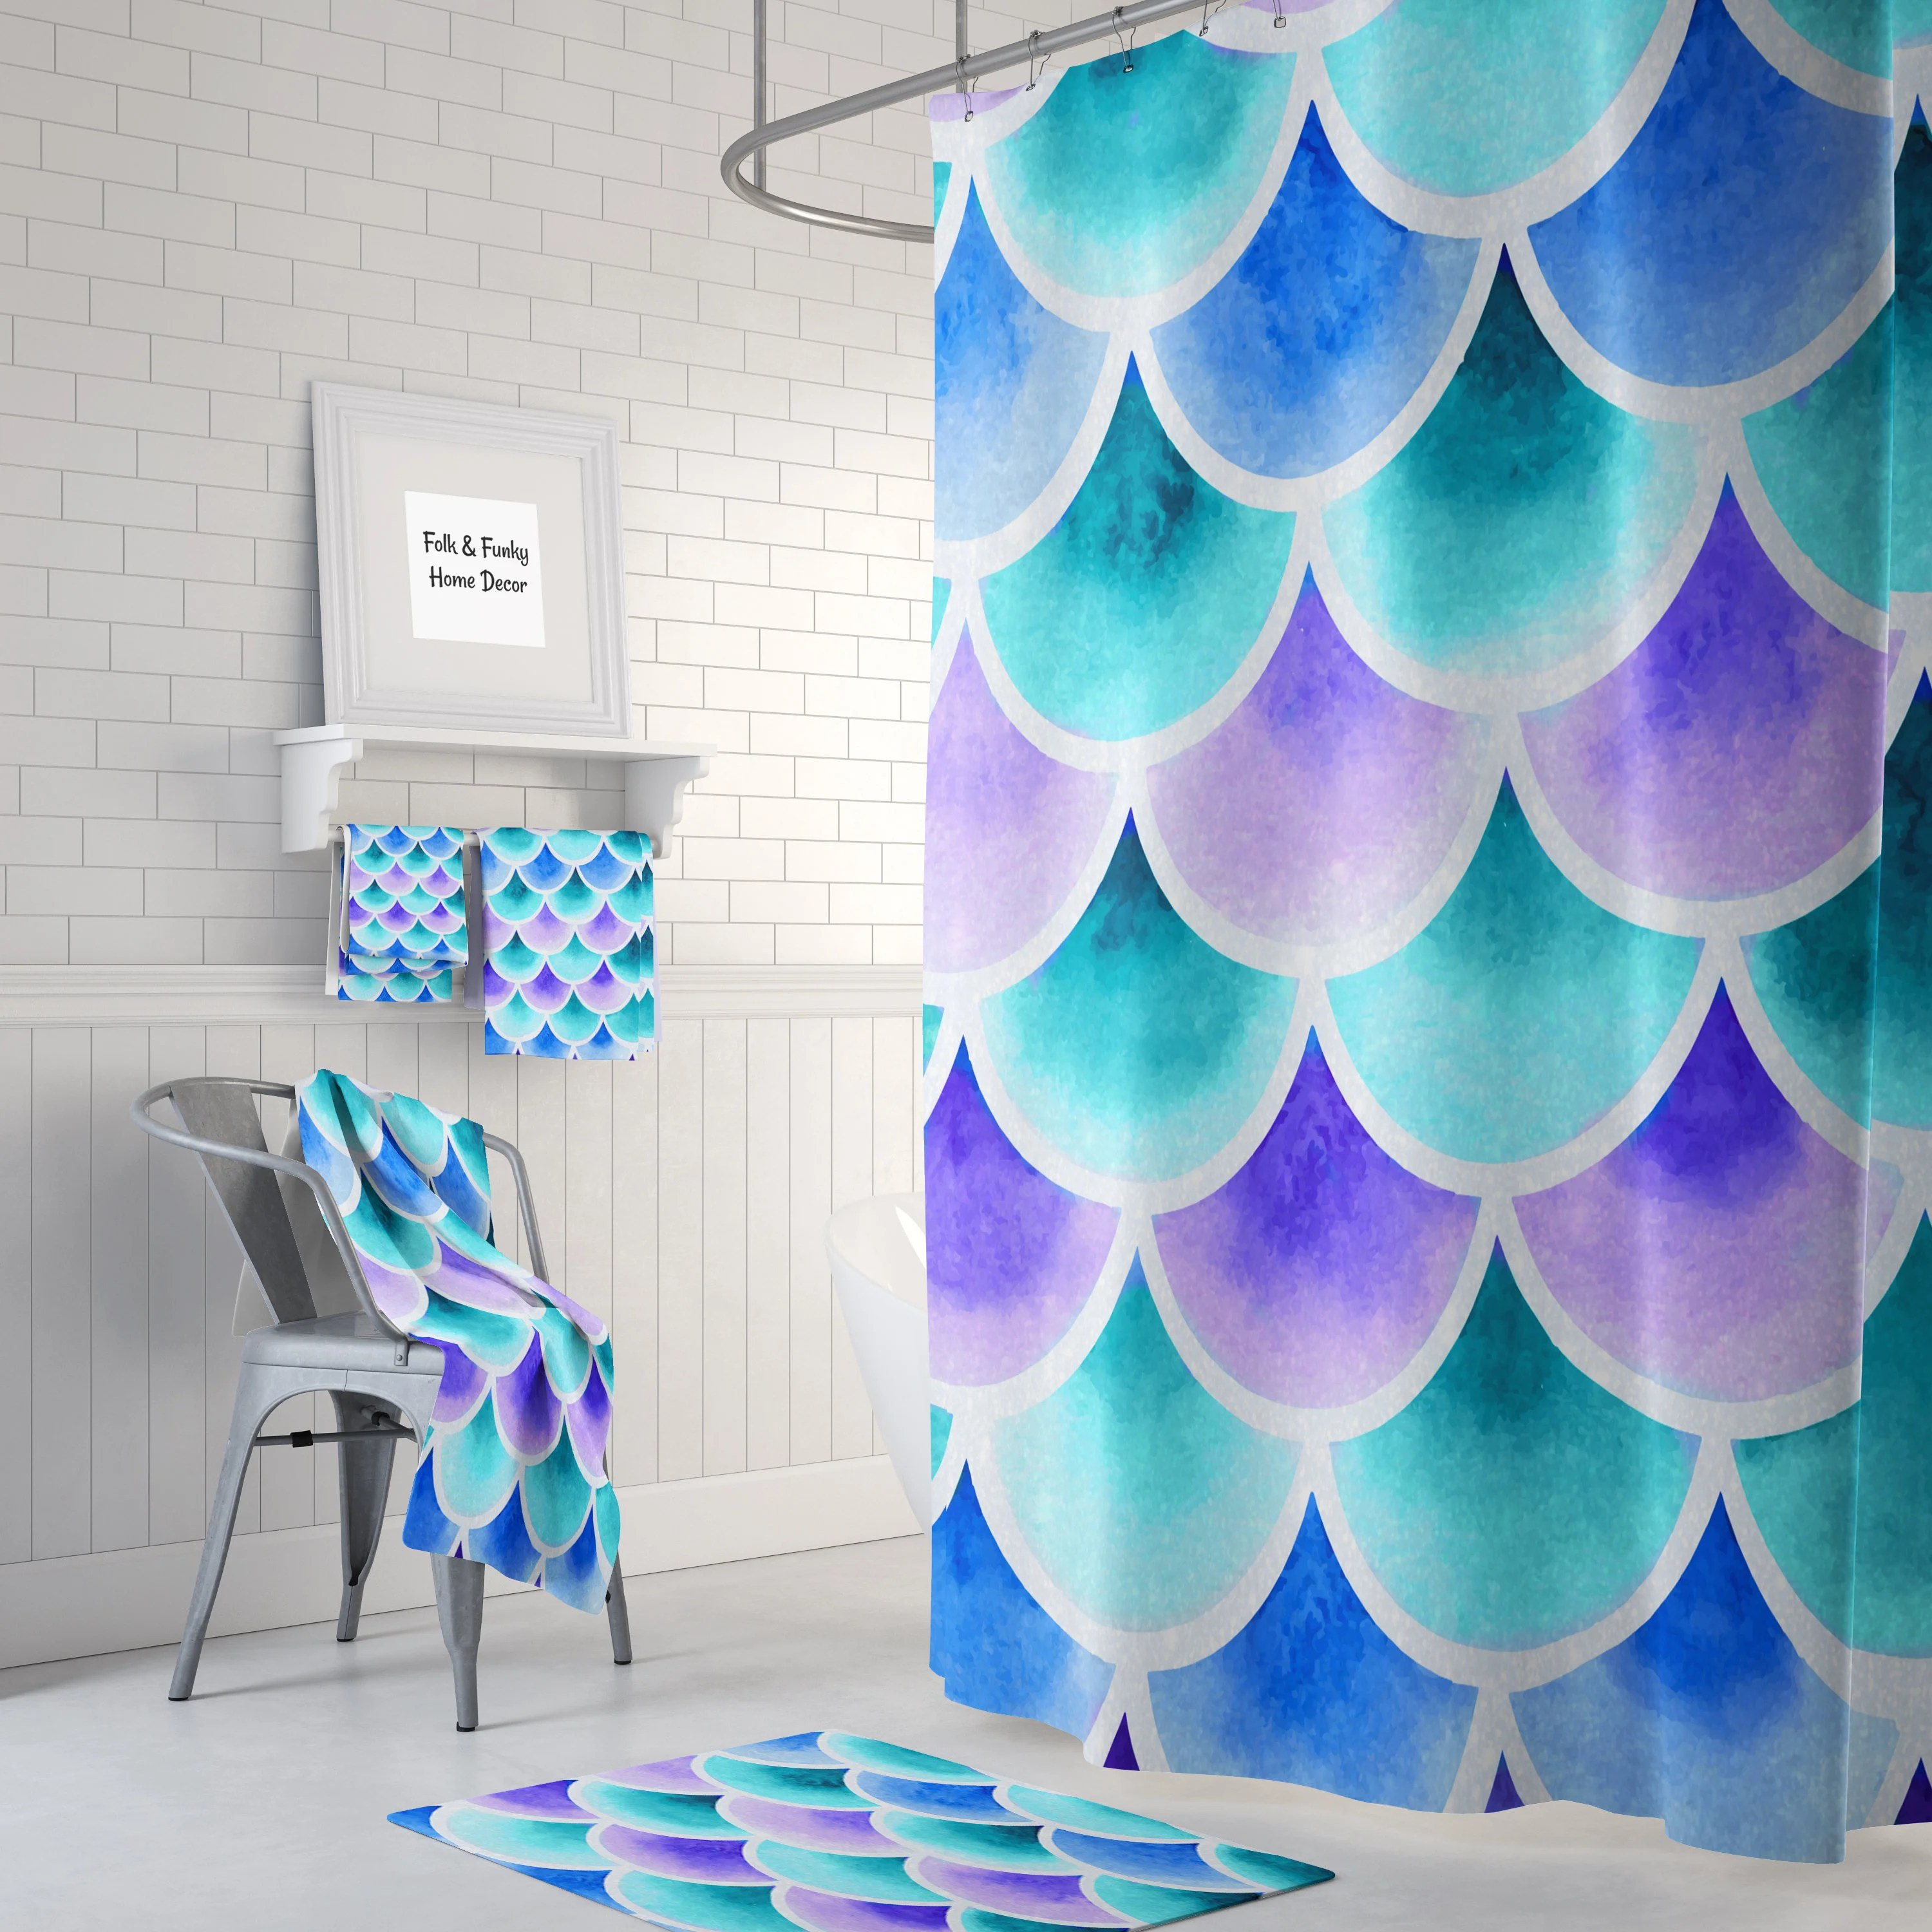 Mermaid Scale Shower Curtain Mermaid Scales Shower Curtain Turquoise Blue Purple Bath Mat And Towels Available